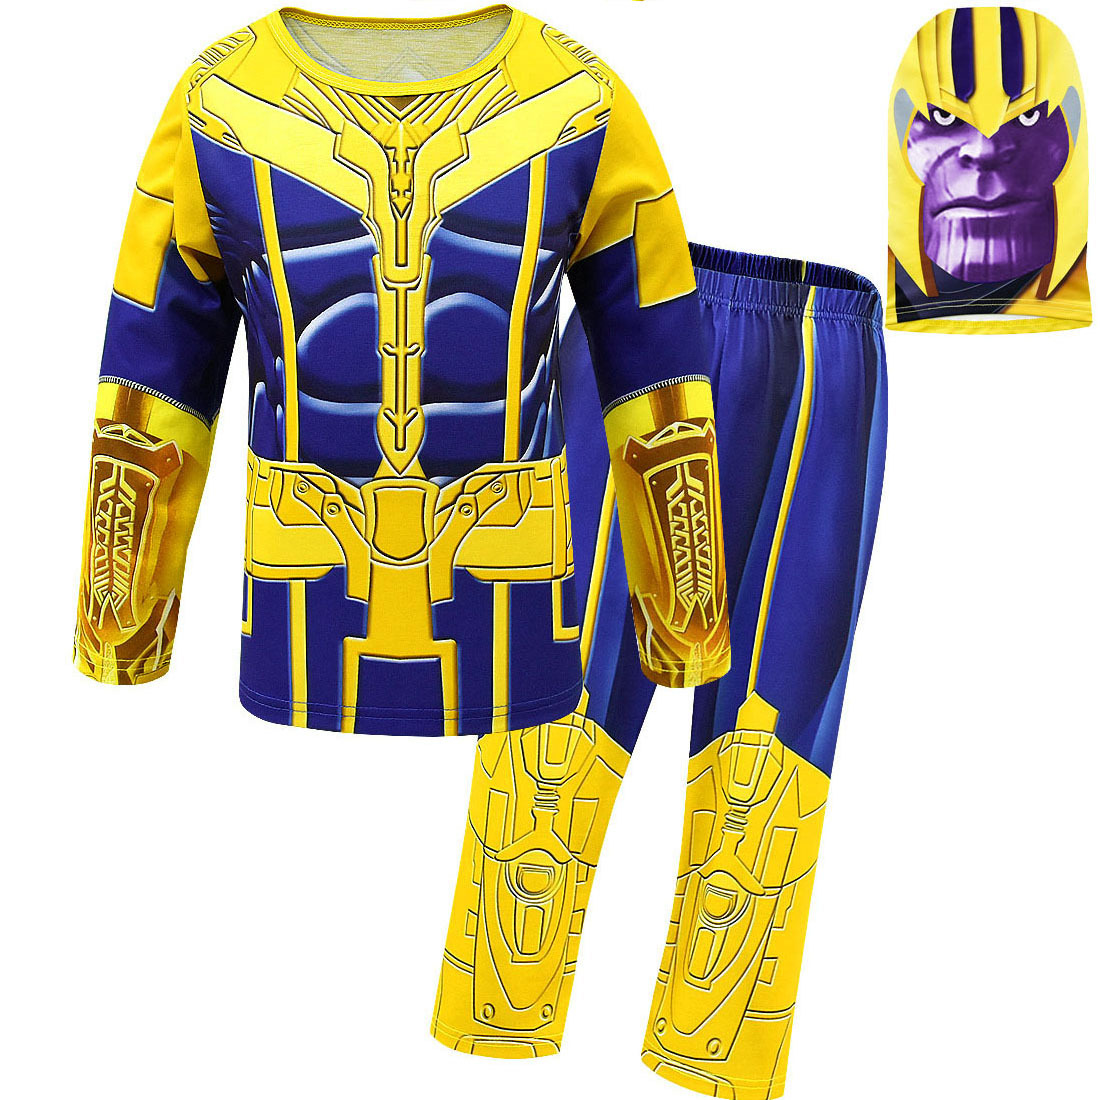 avengers-endgame-thanos-captain-font-b-marvel-b-font-kids-boys-girls-tops-pants-clothes-sets-home-wear-halloween-cosplay-carnival-costumes